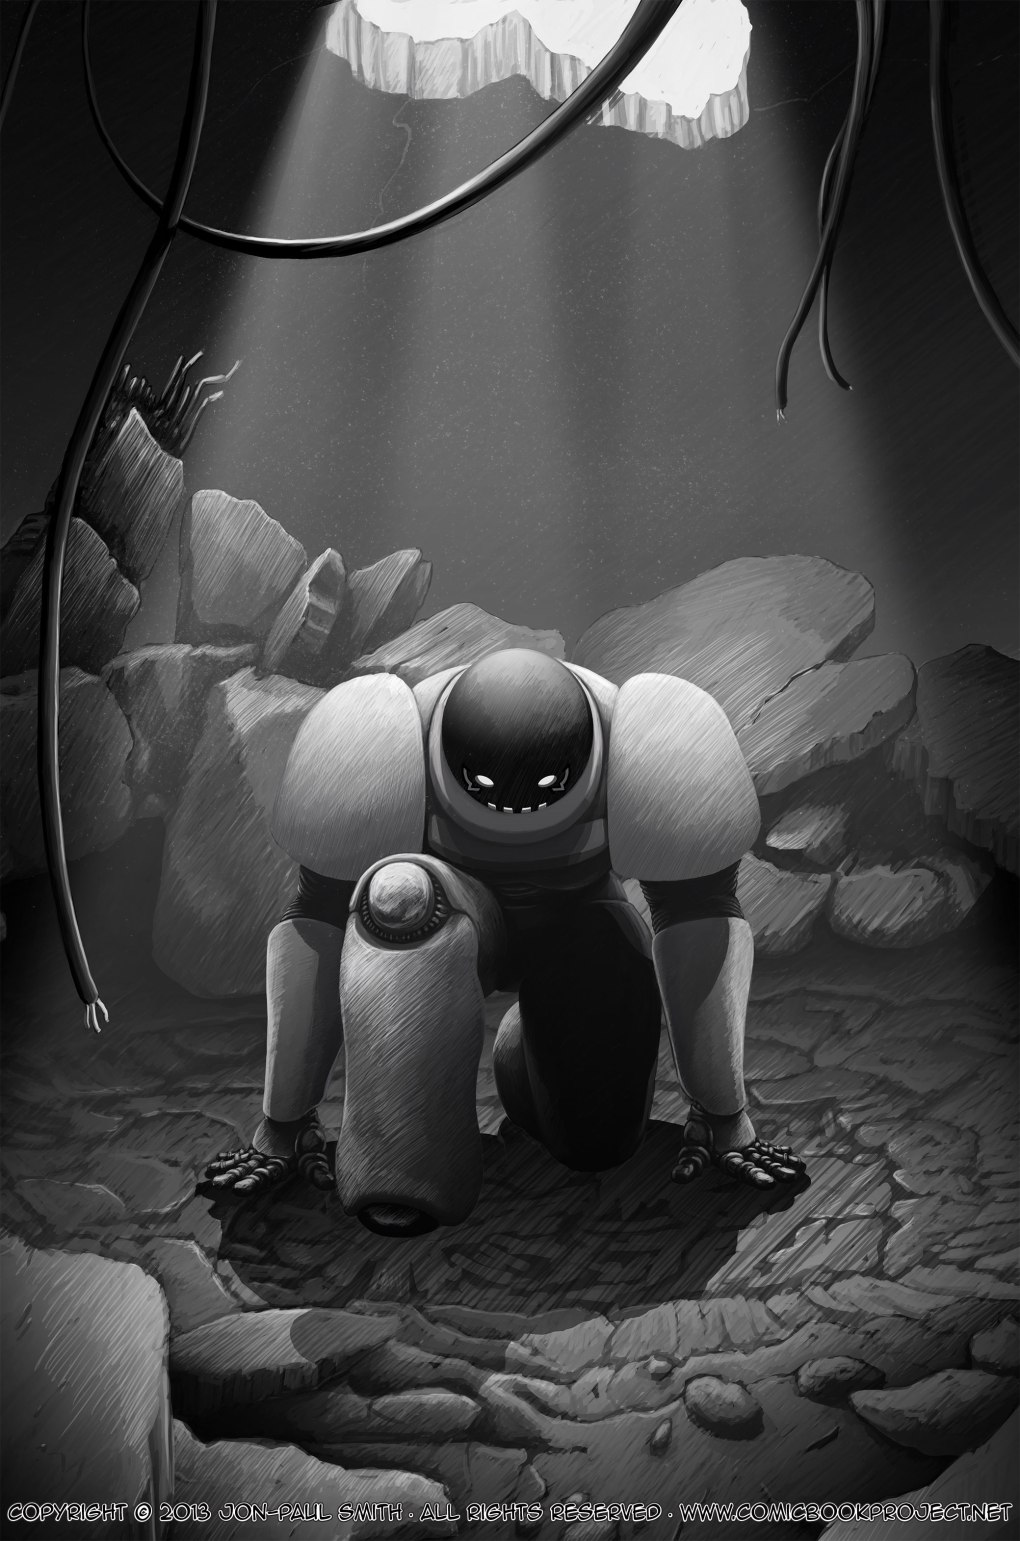 Comic Book Project Page 28 Grayscale